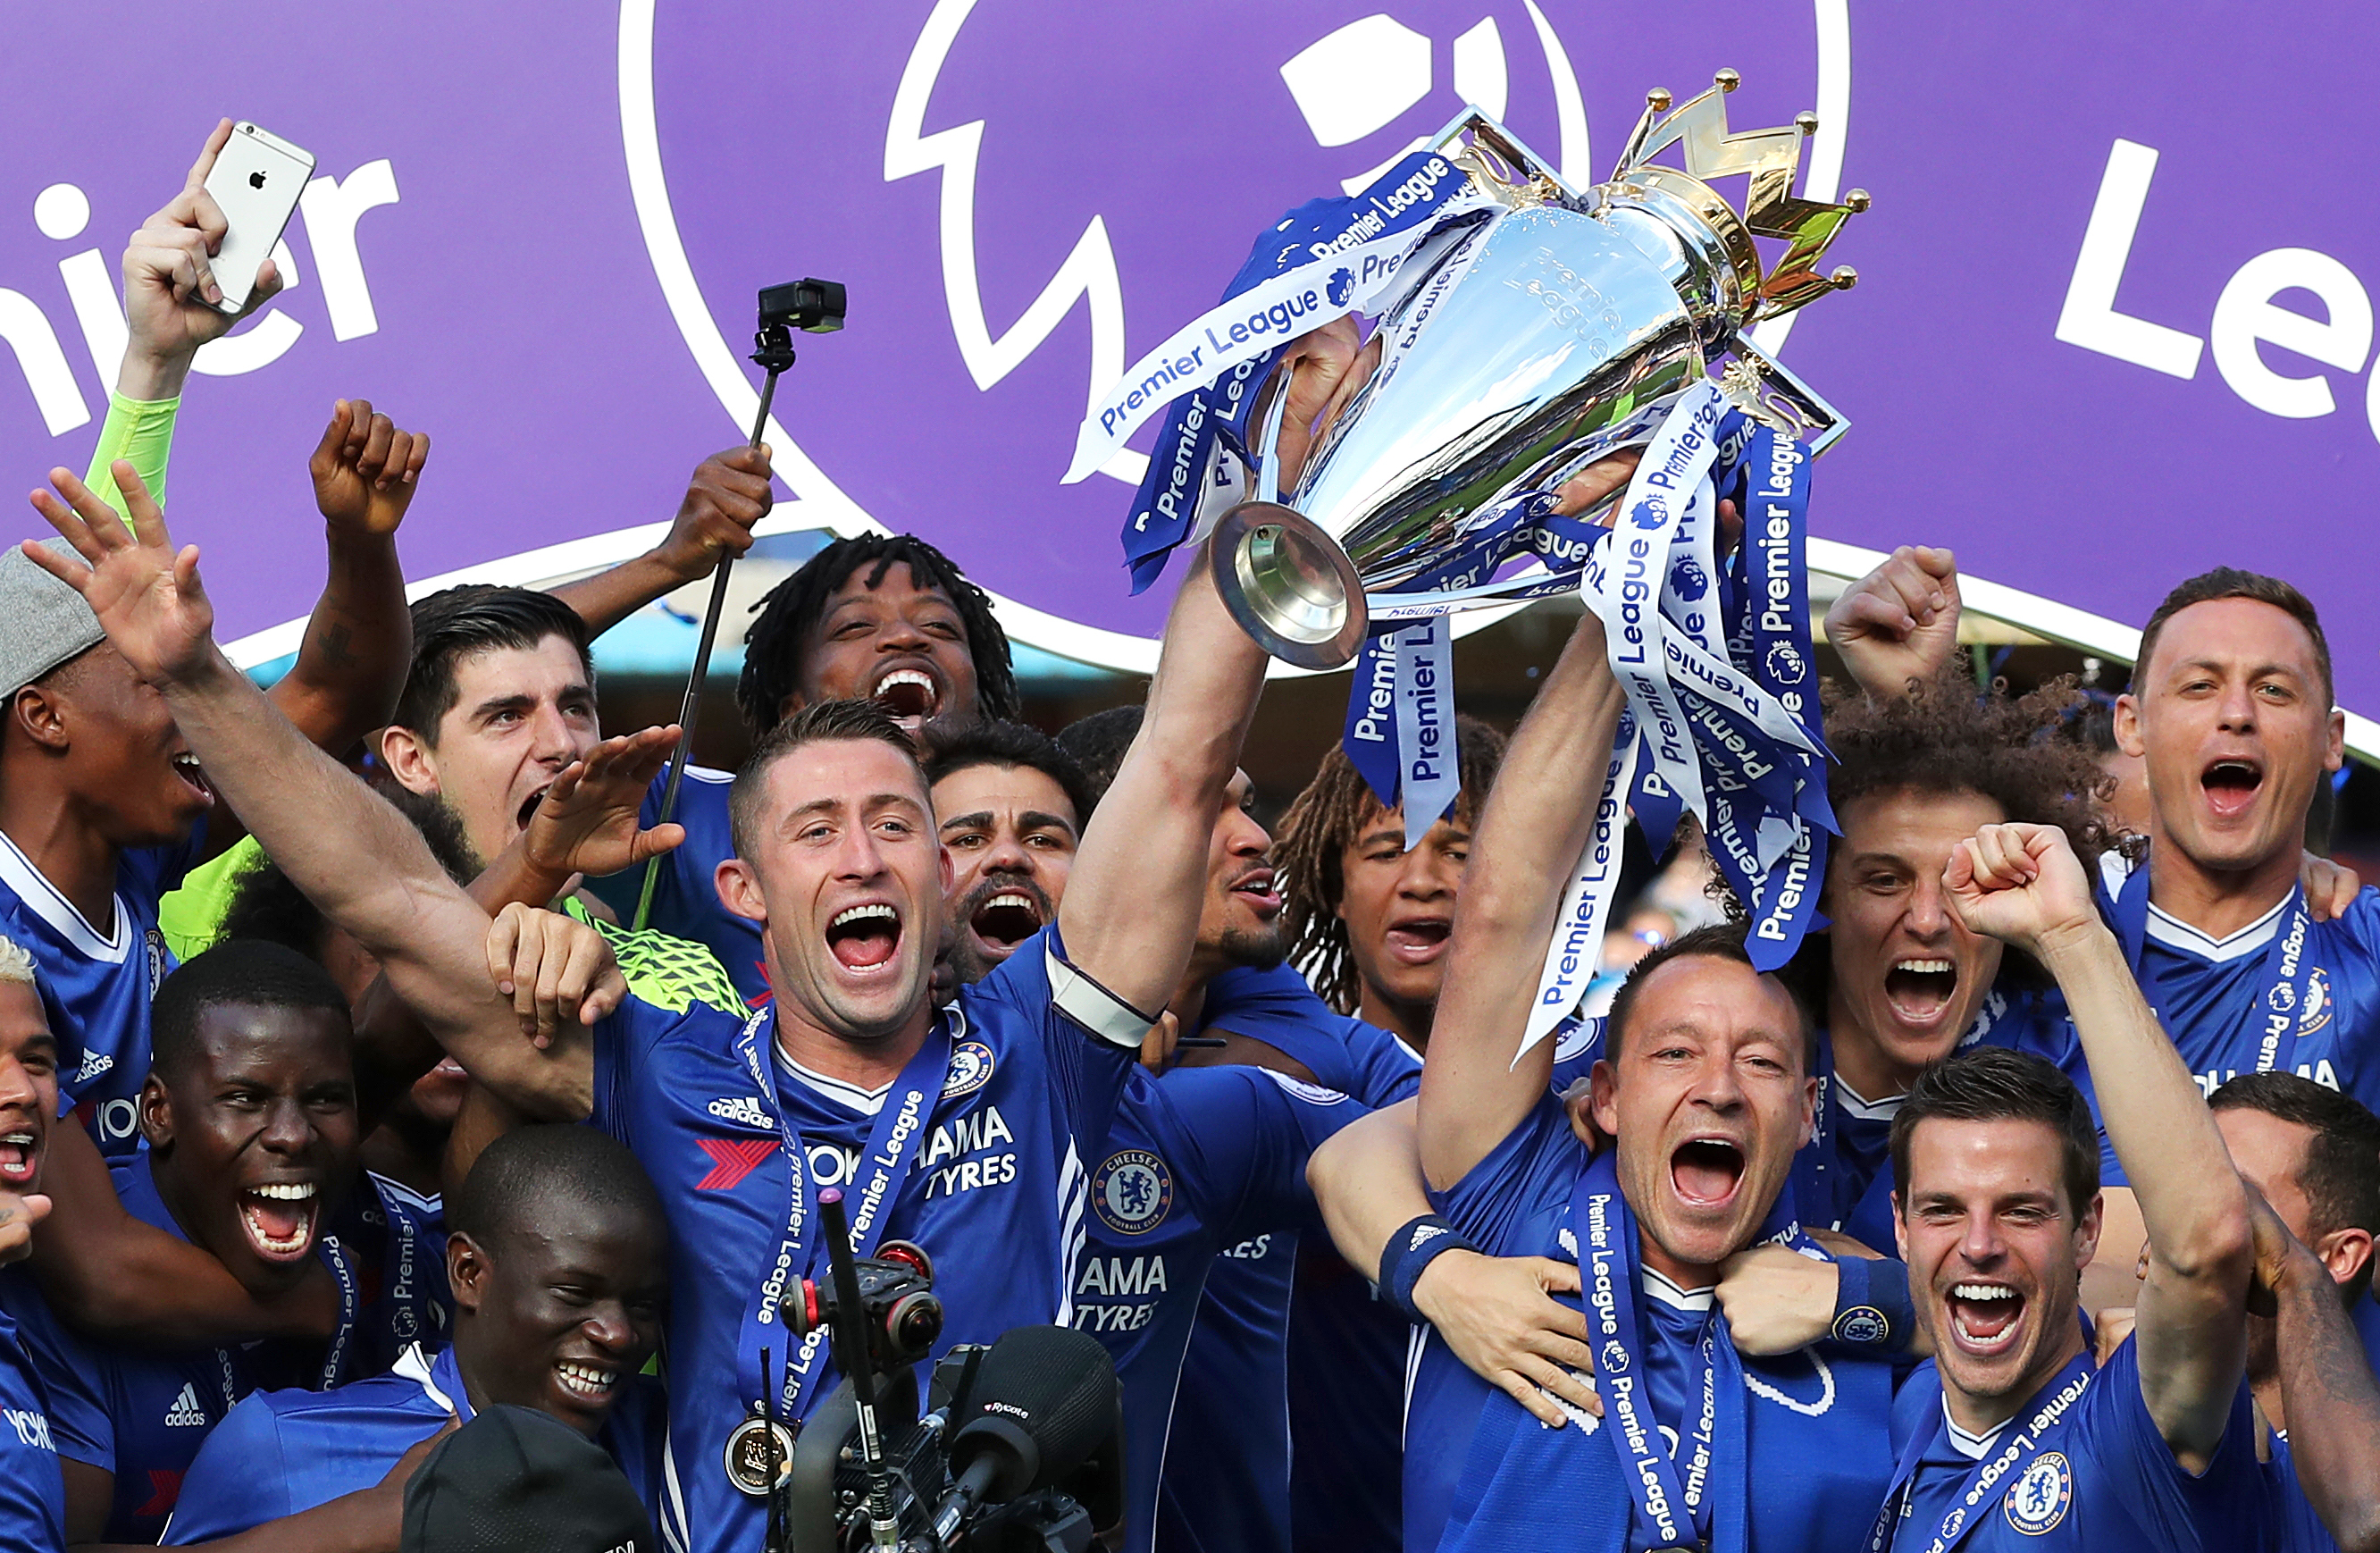 Chelsea lift the 2016/17 Premier League title